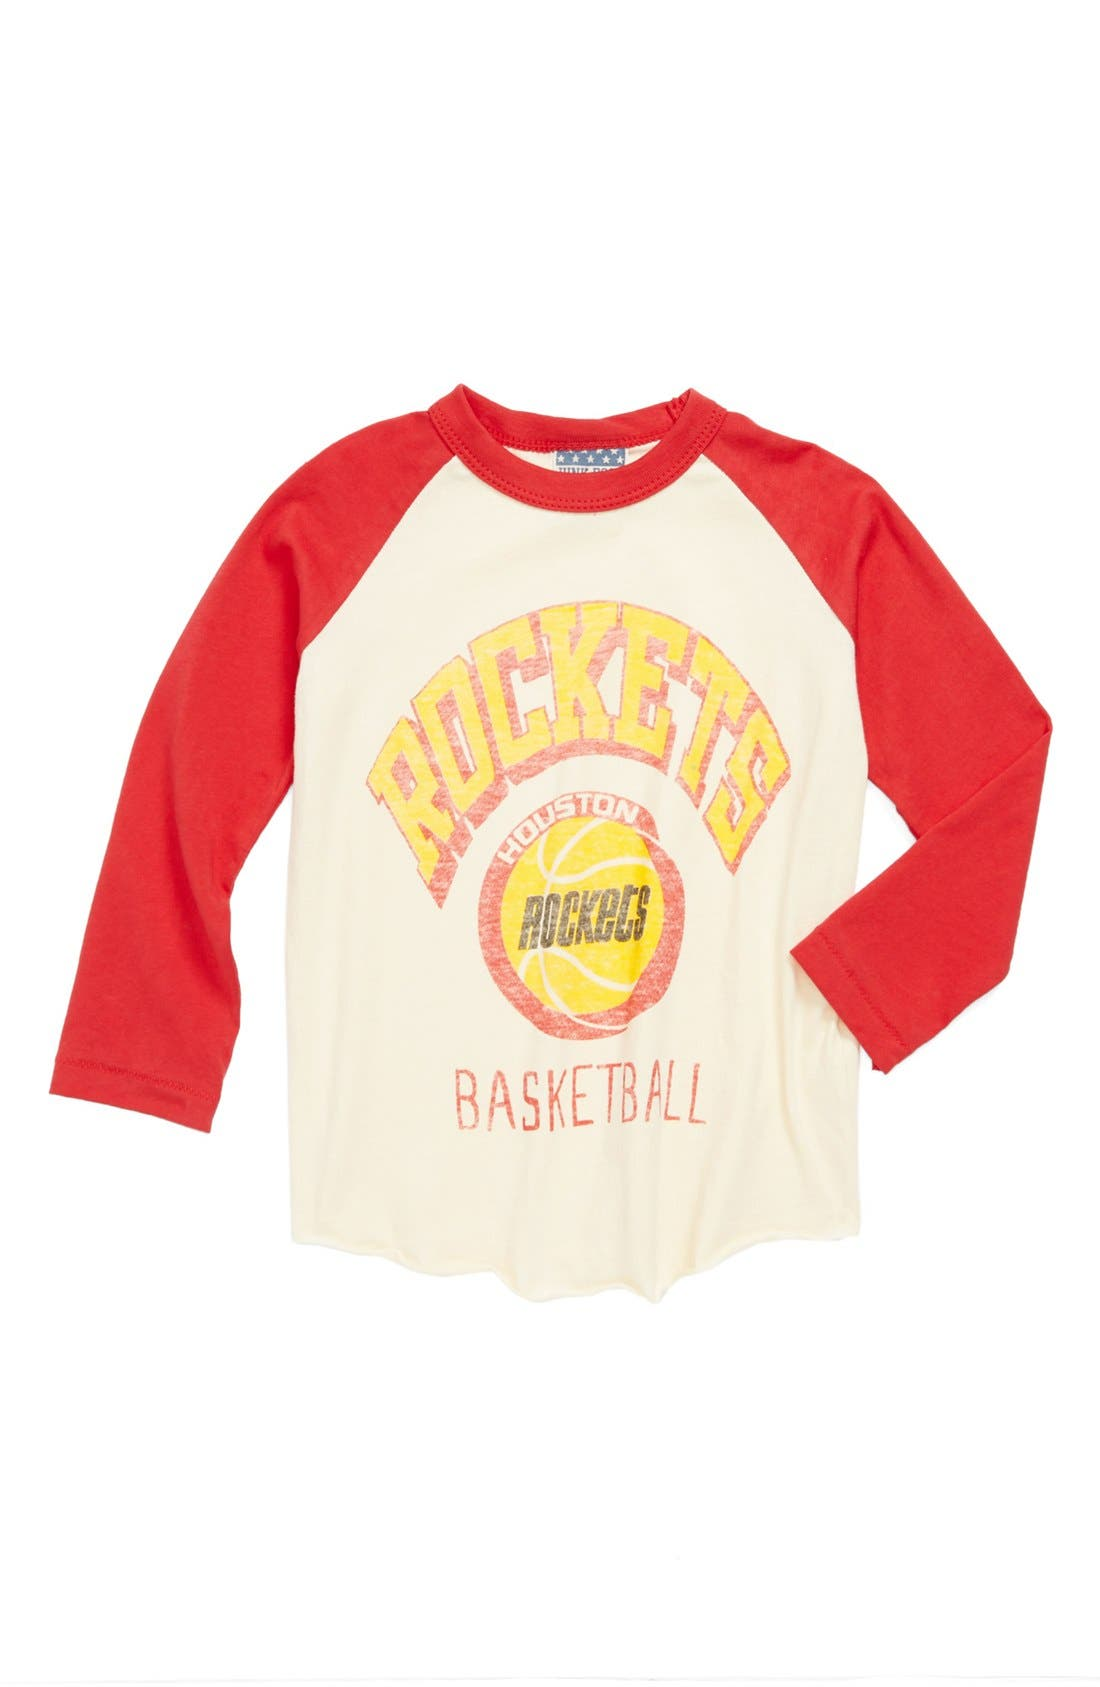 Main Image - Junk Food 'Houston Rockets' Long Sleeve T-Shirt (Toddler Boys)